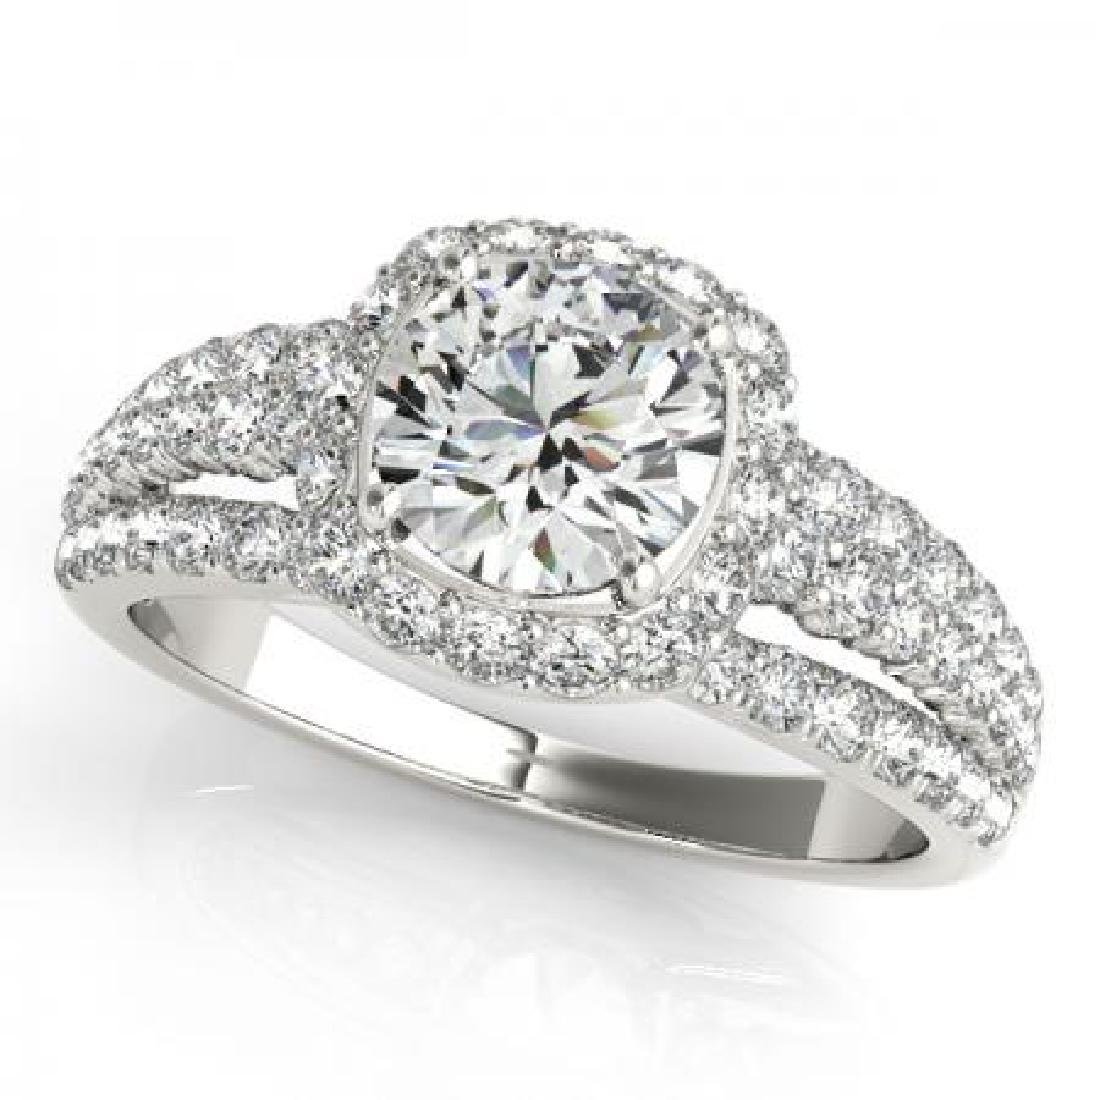 CERTIFIED PLATINUM 1.37 CT G-H/VS-SI1 DIAMOND HALO ENGA